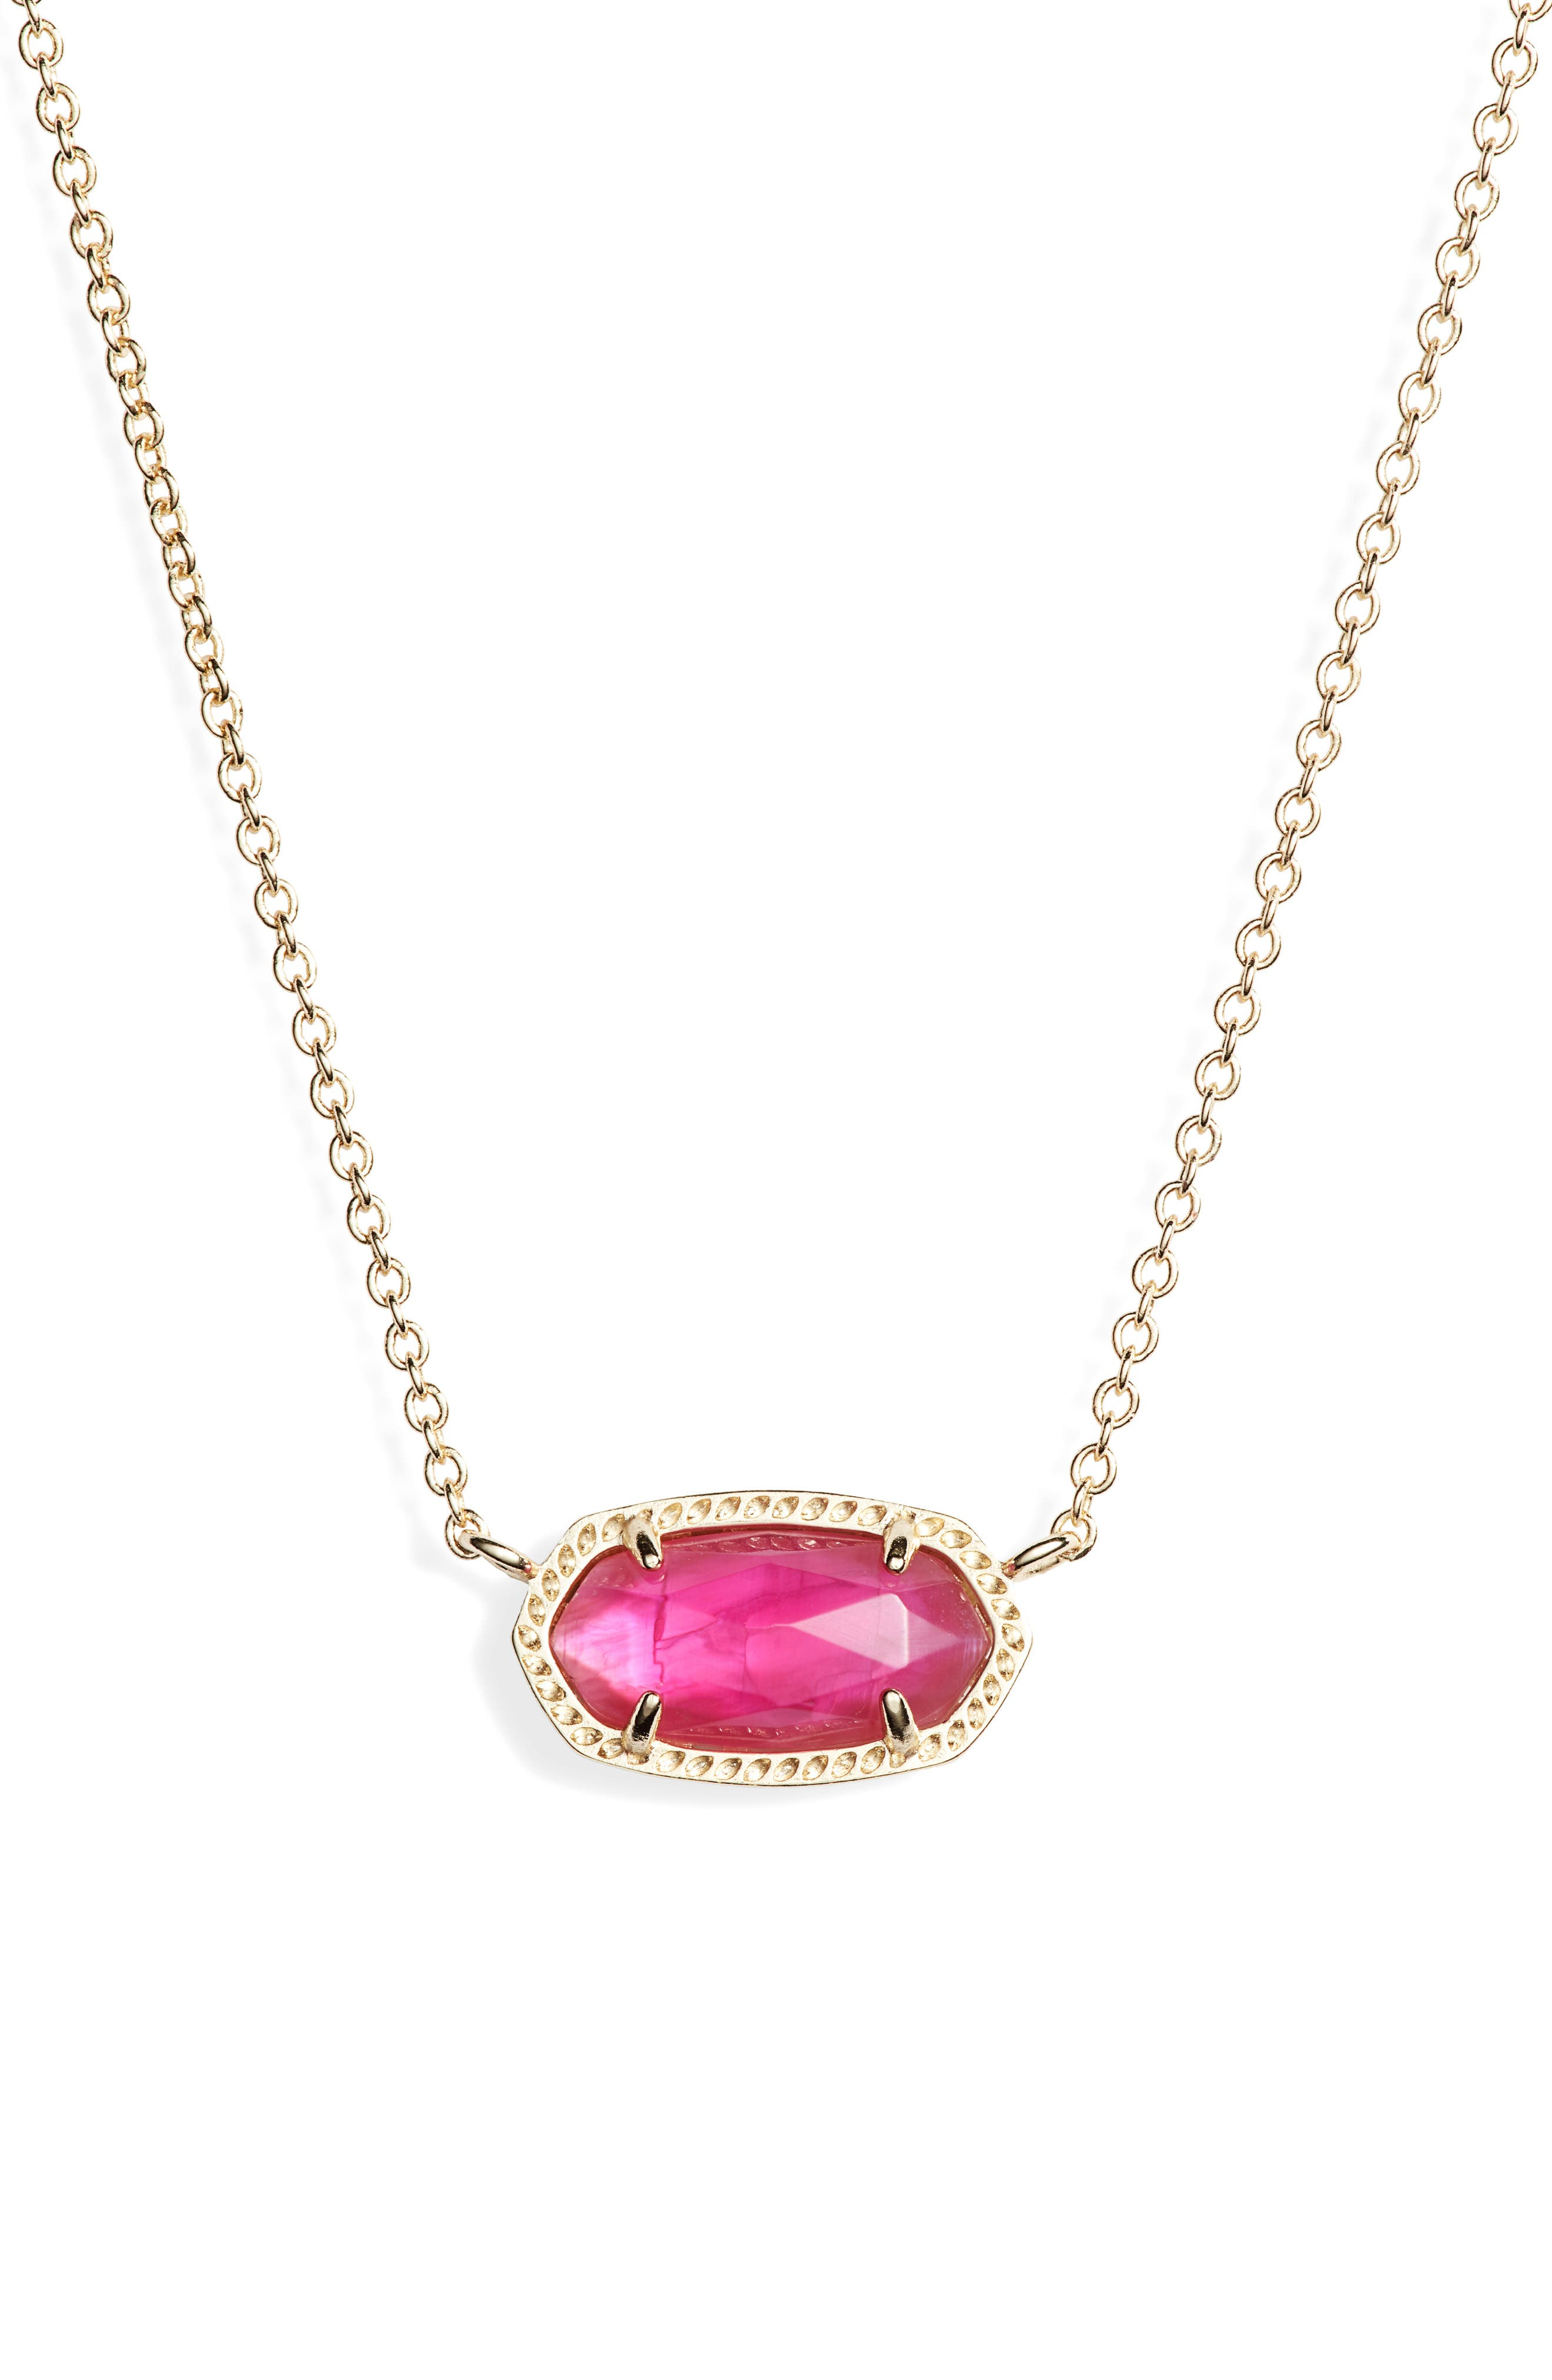 necklace for petites